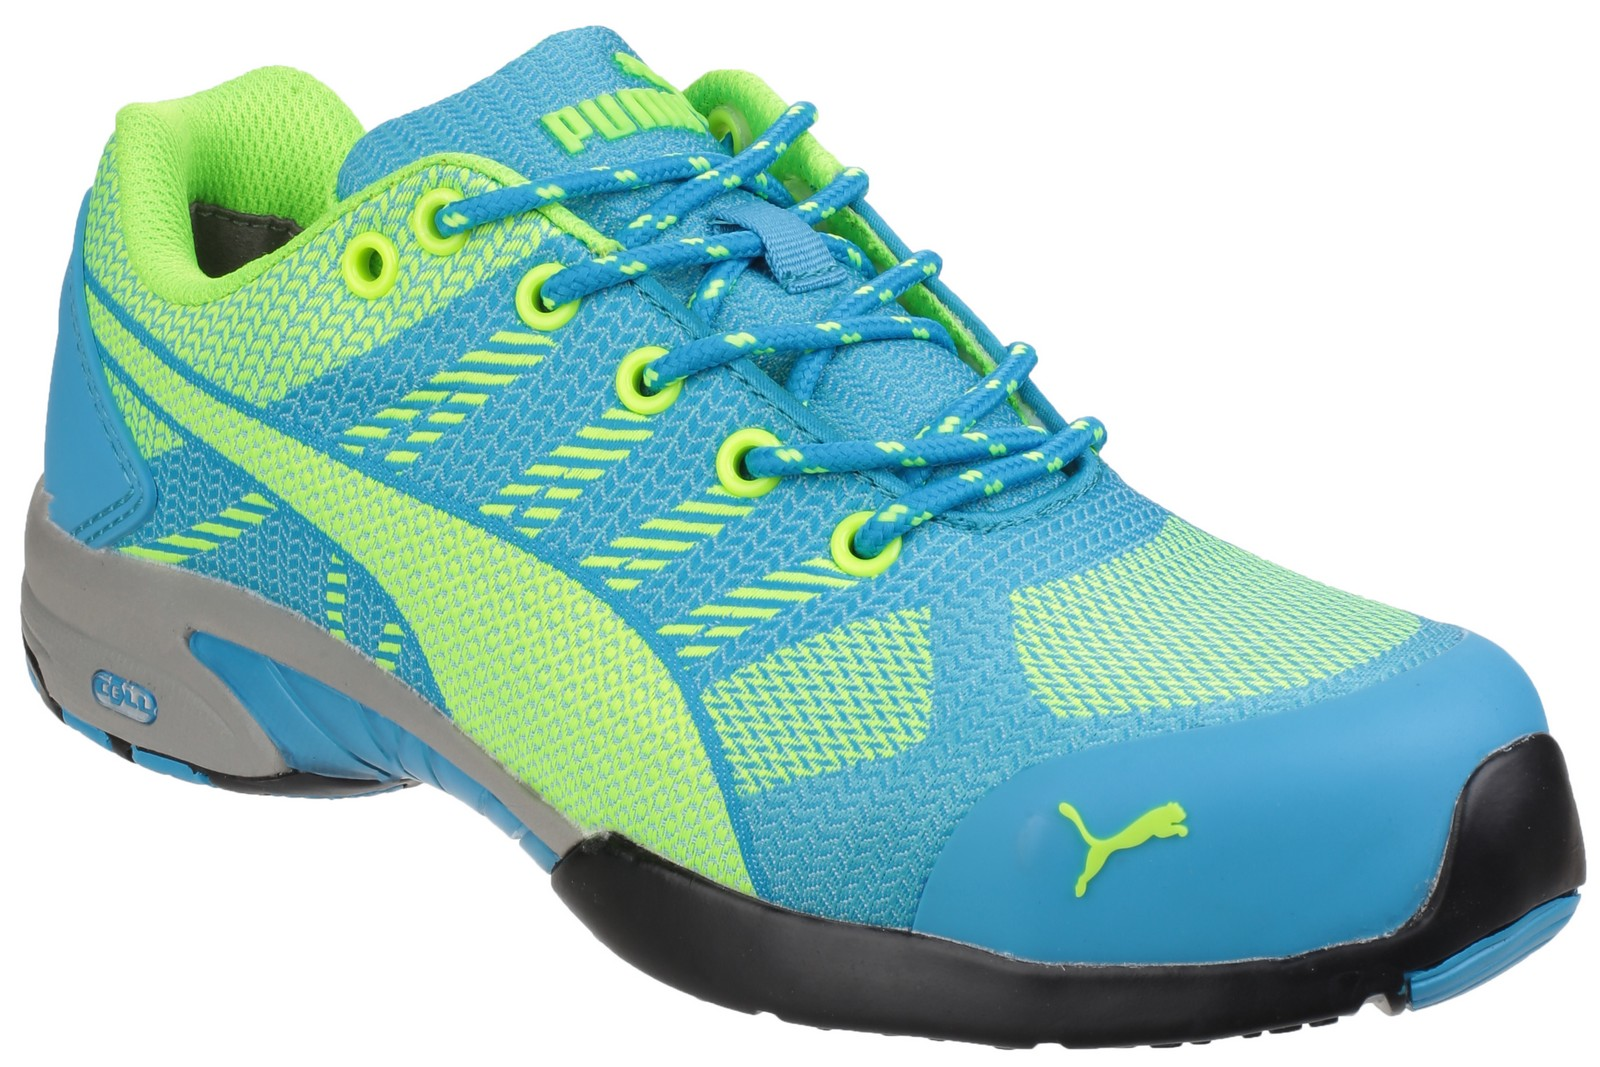 13d73dee3a1e Puma Safety Celerity Knit Blue Ladies Safety Trainer